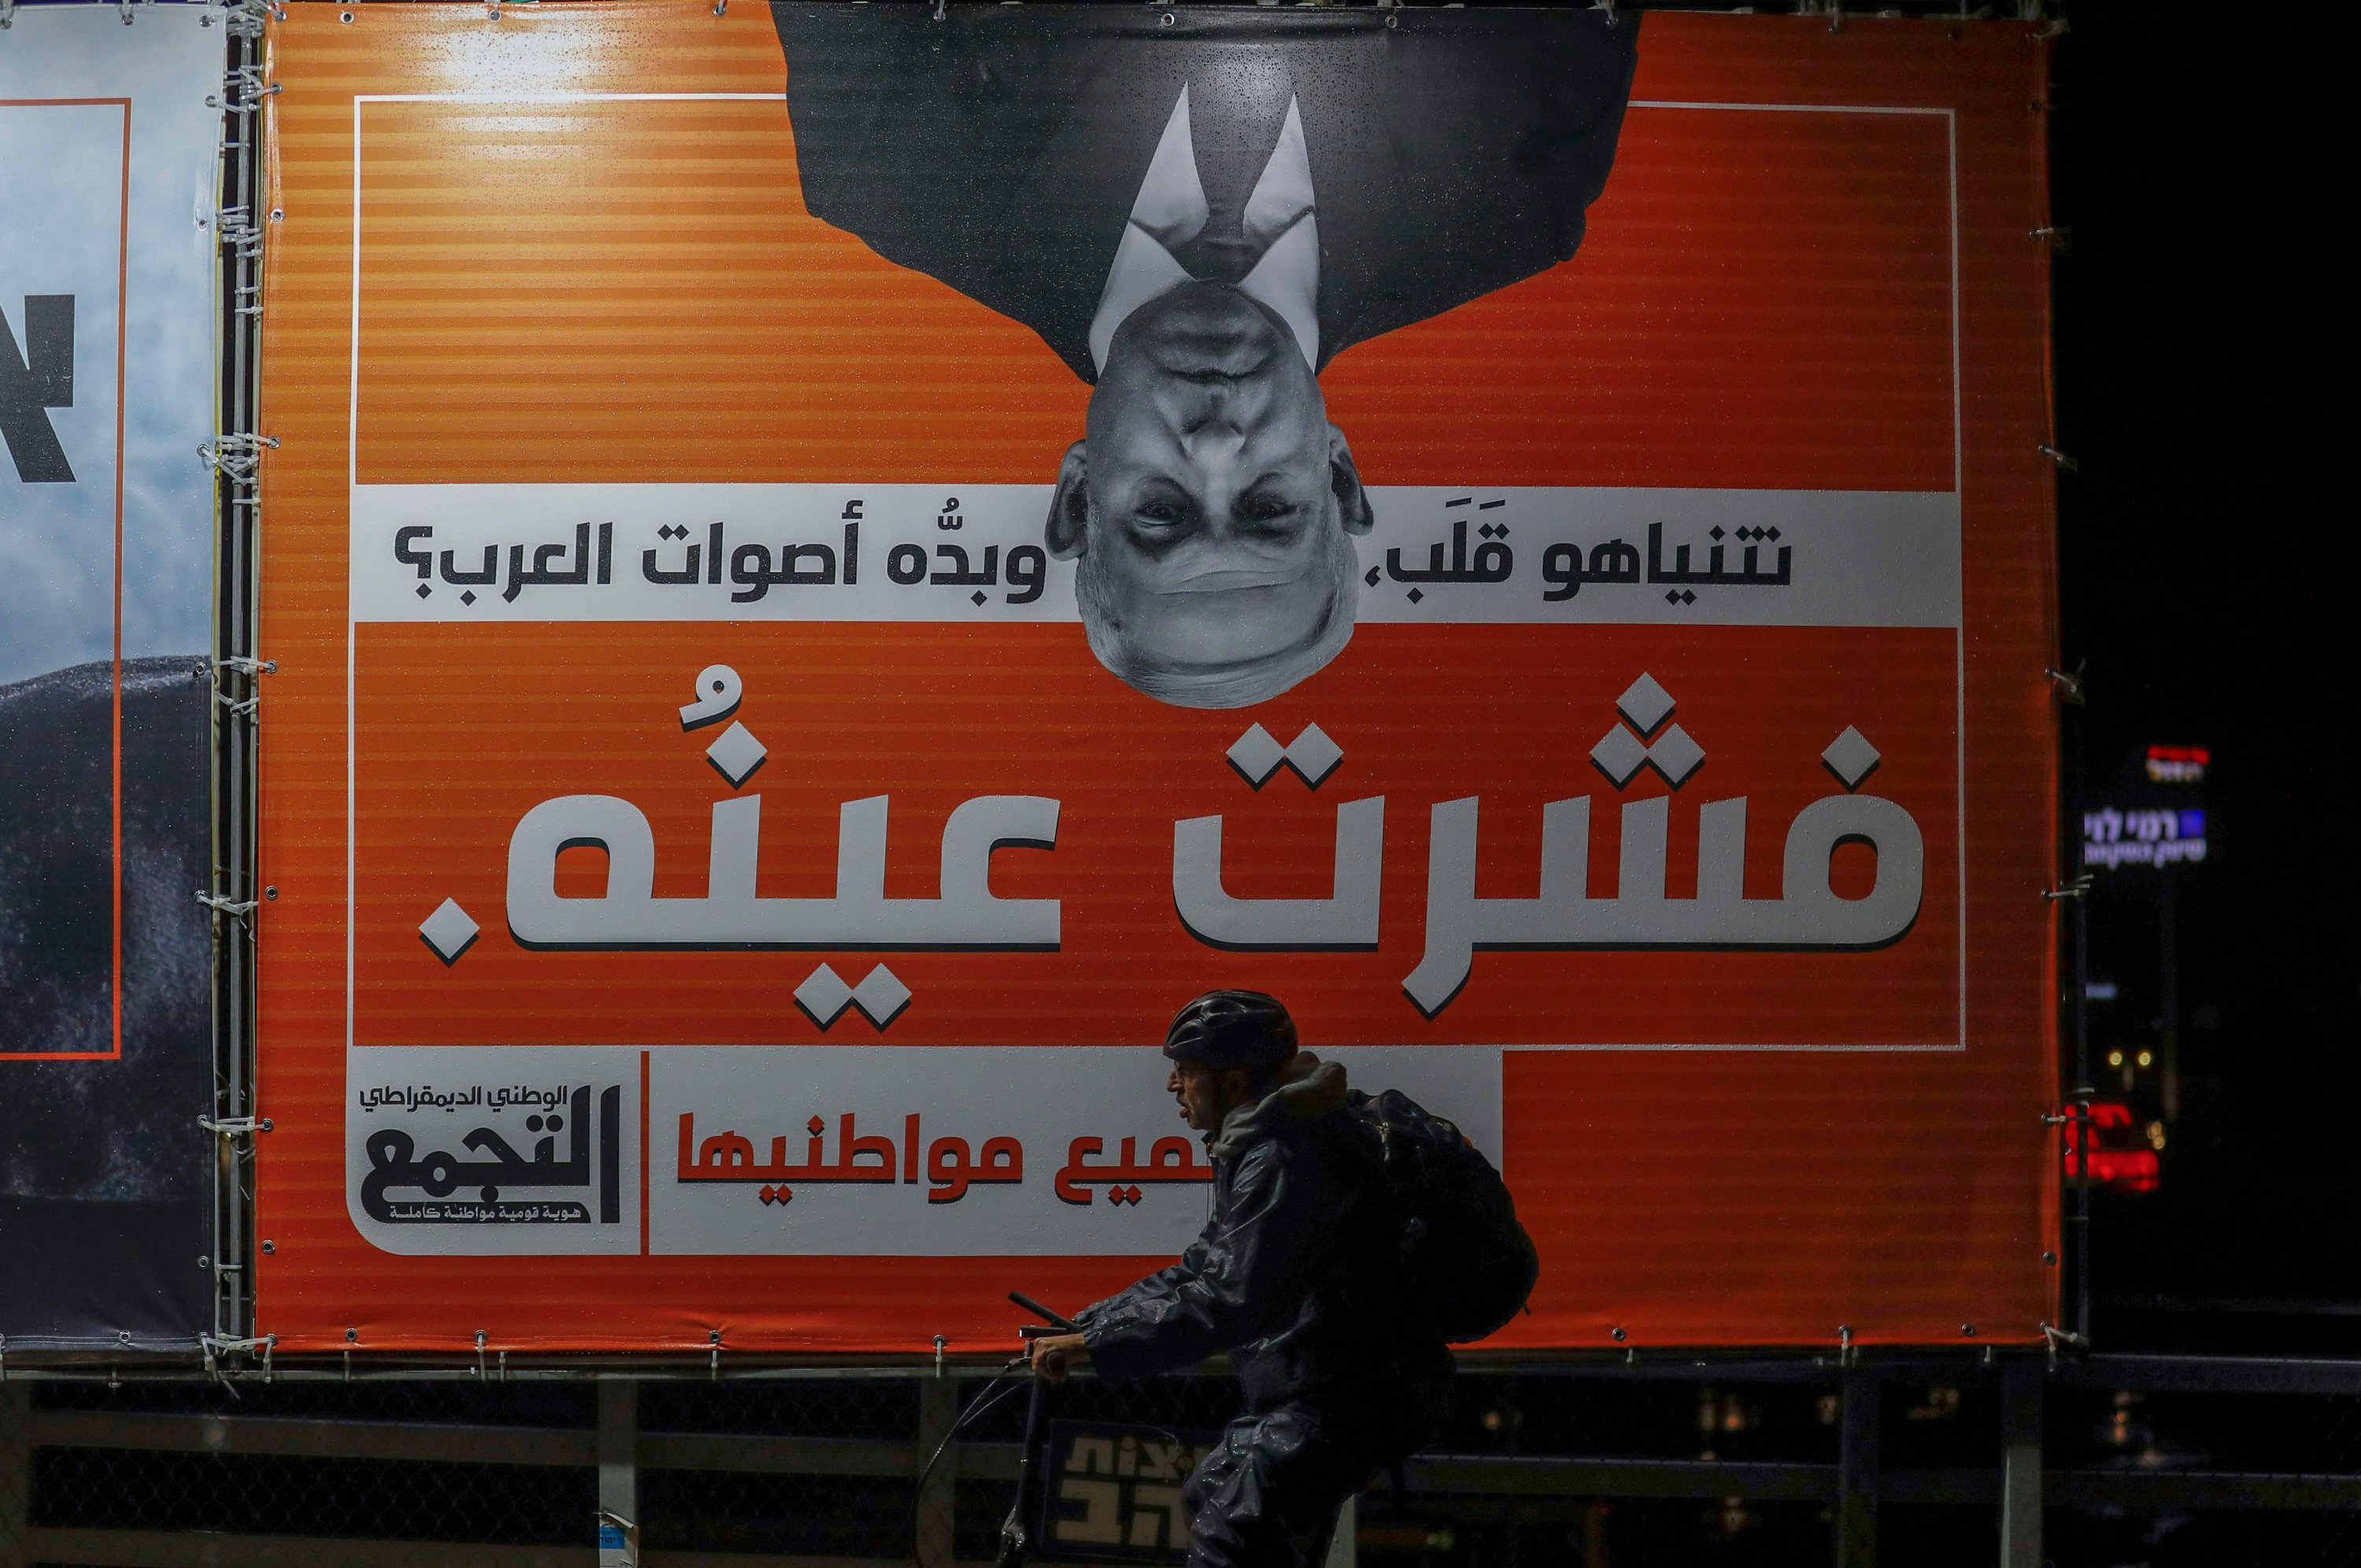 A man rides a bike past a campaign billboard for the Balad Party, part of the Arab Joint List that reads in Arabic